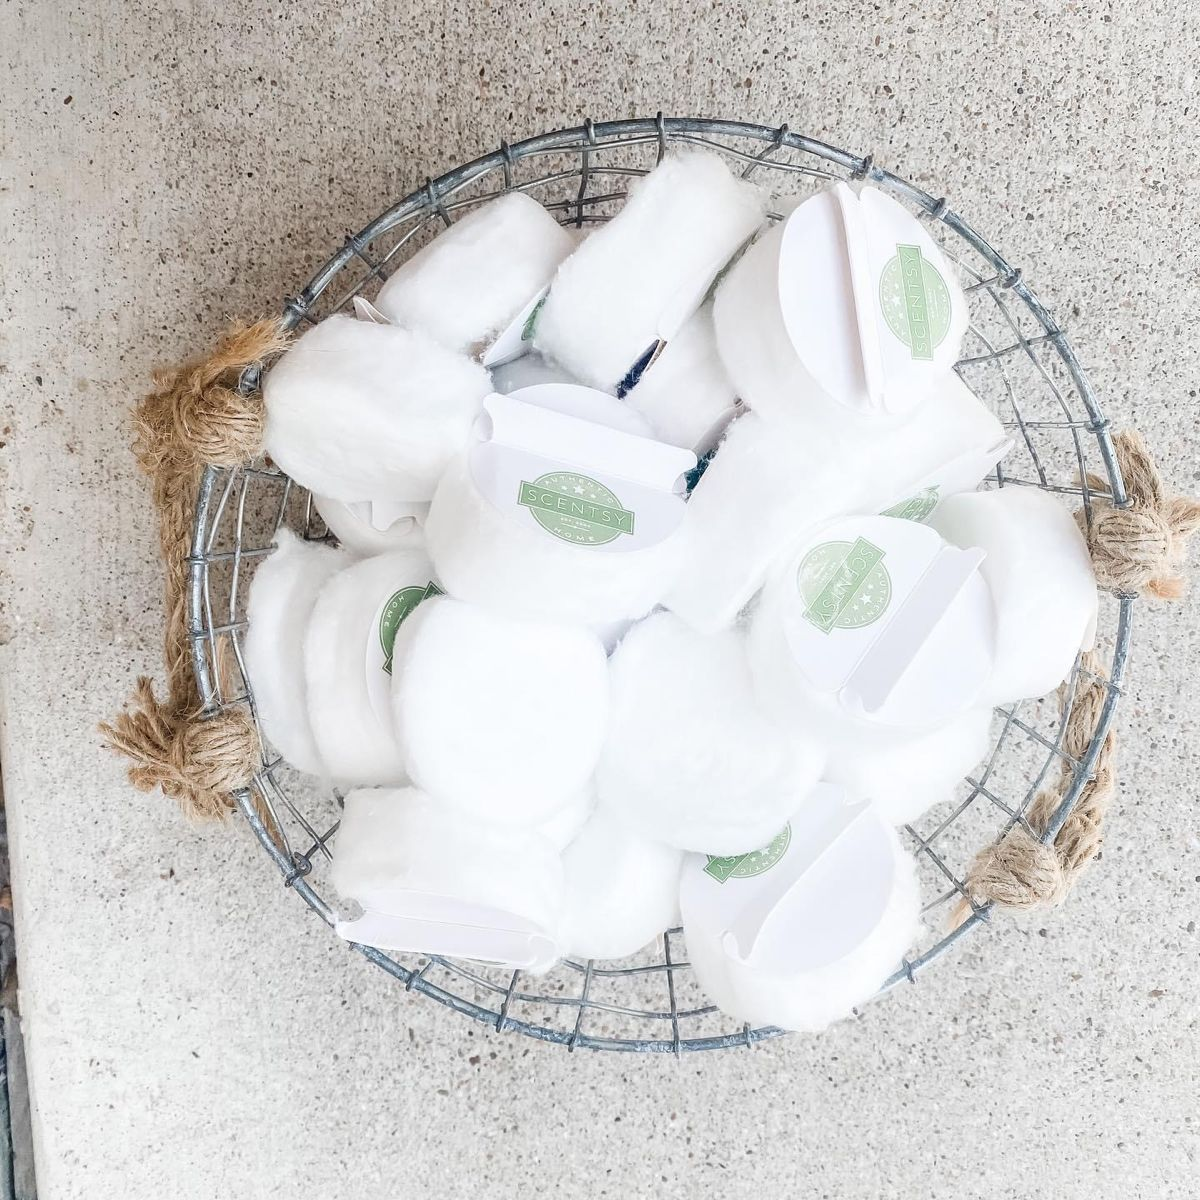 Cotton clean up 25 pack in 2020 scentsy scented wax